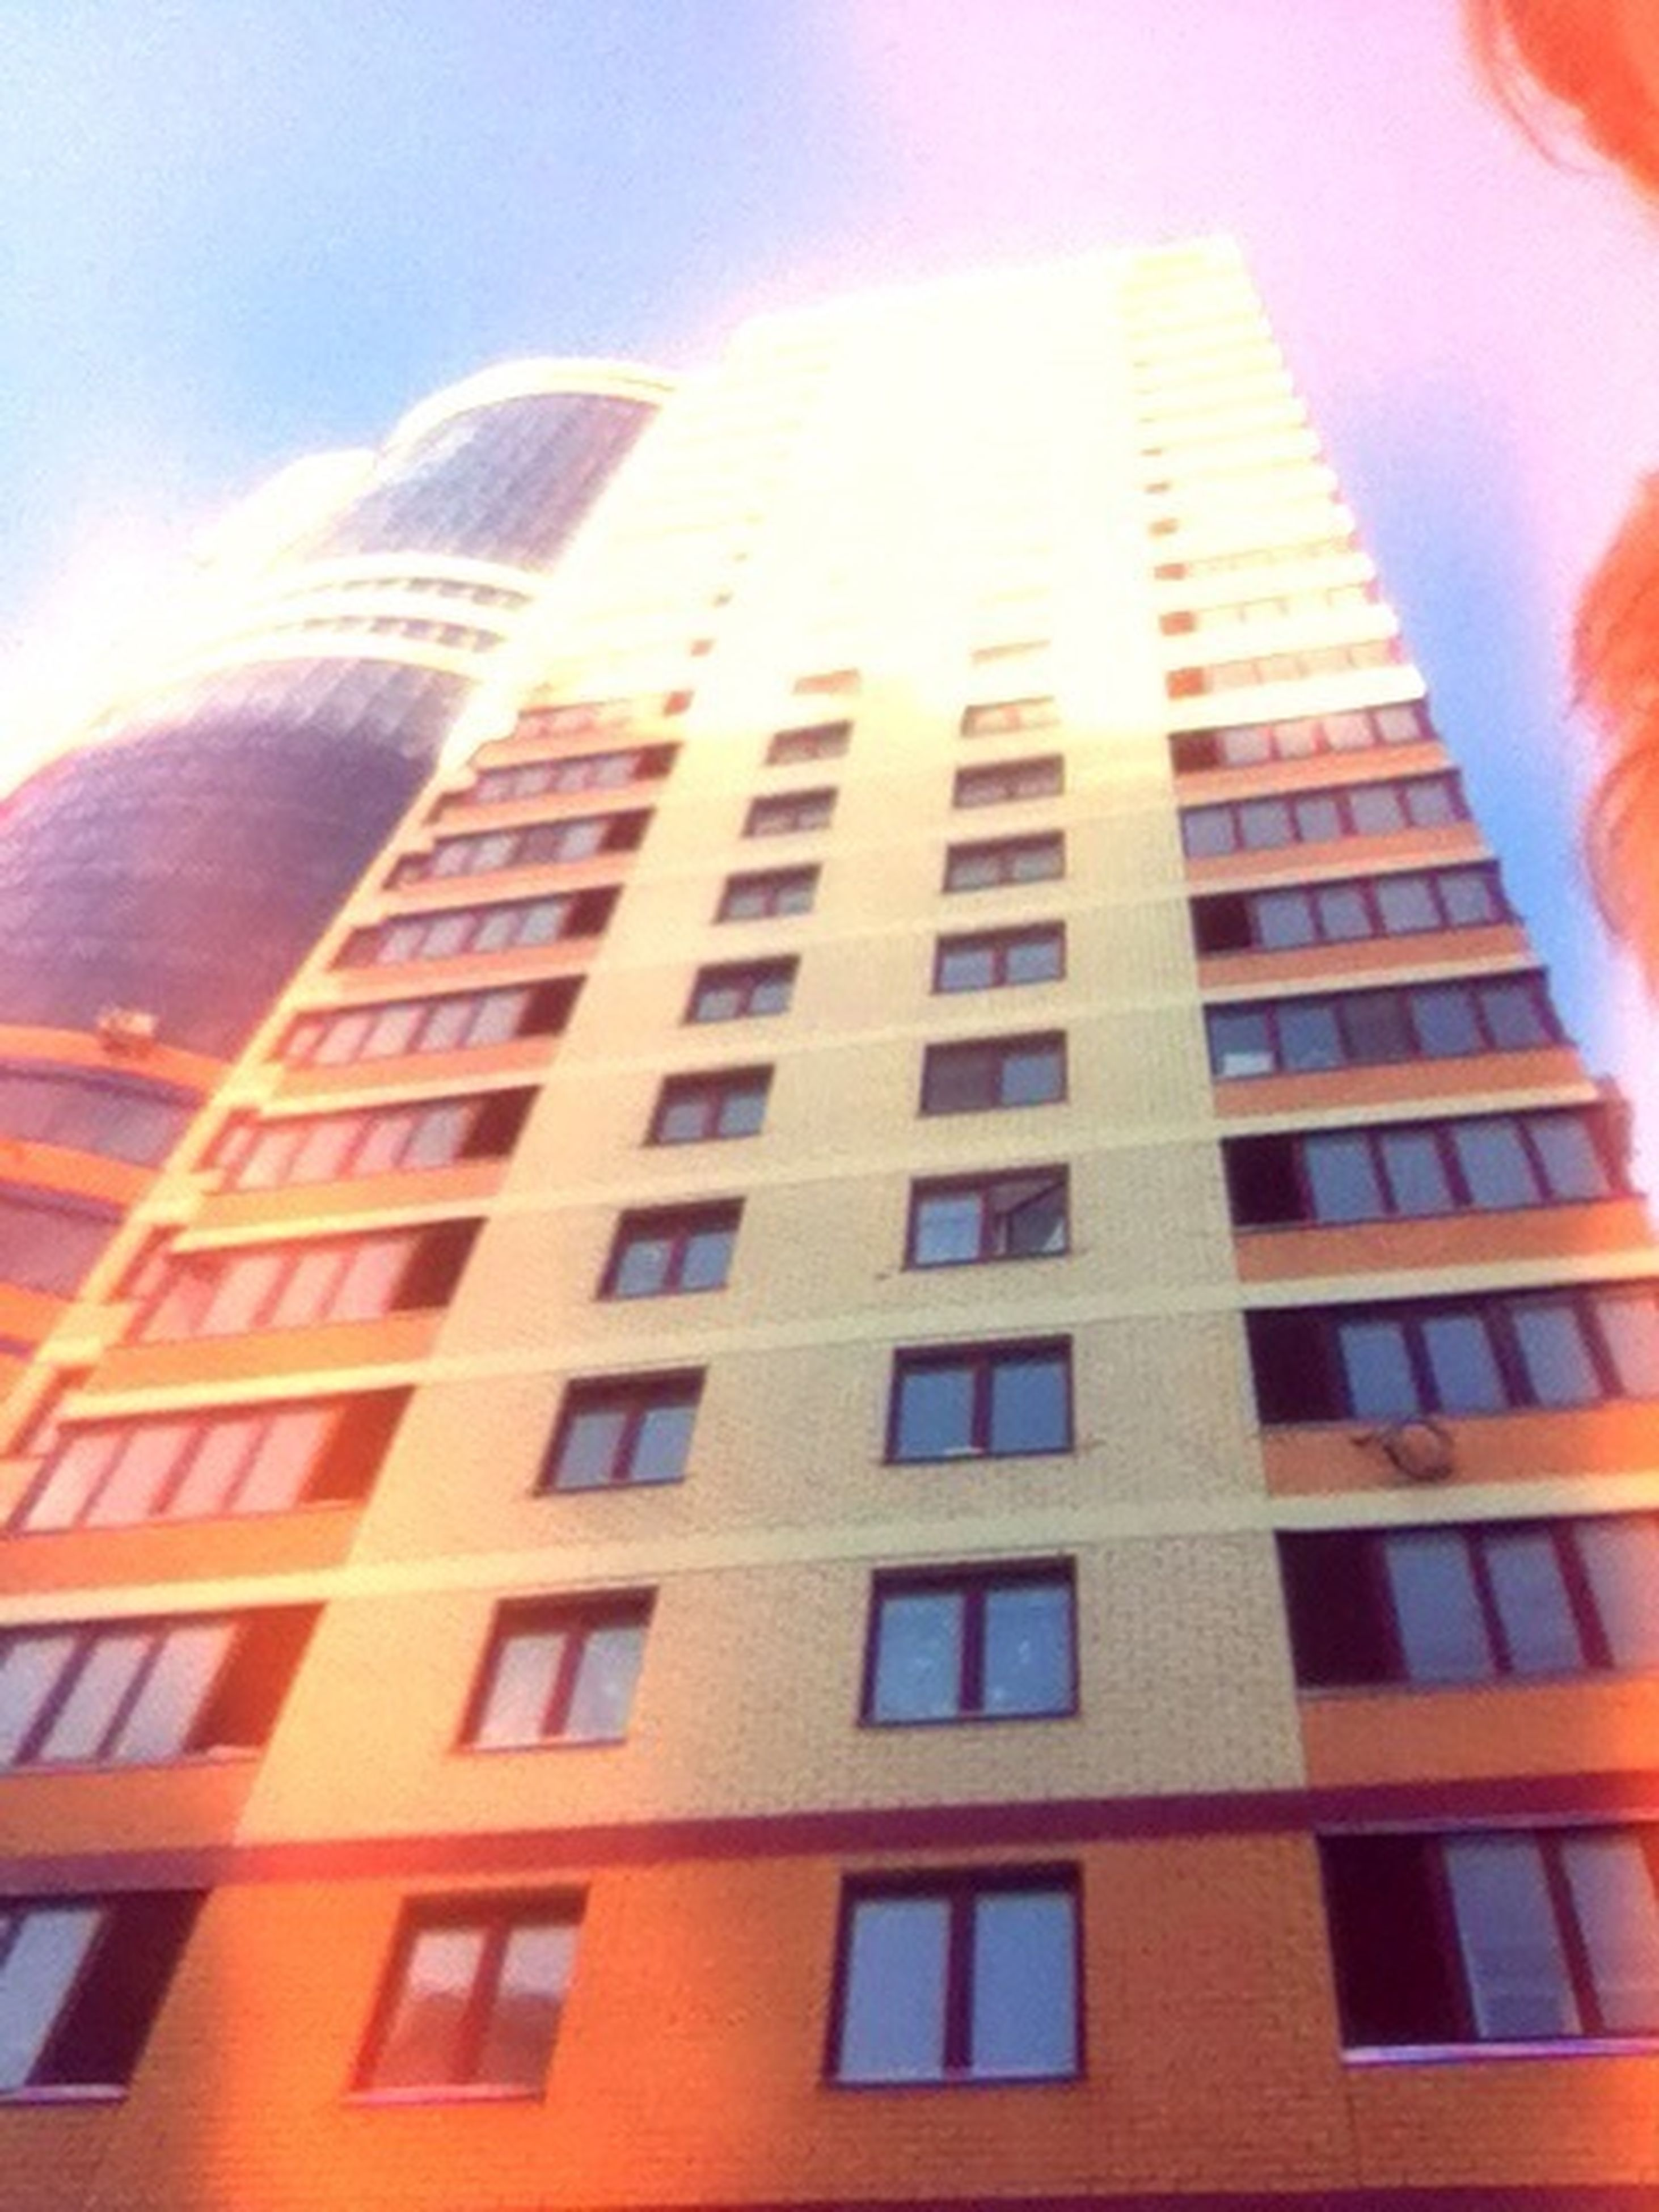 architecture, building exterior, low angle view, built structure, window, city, modern, building, glass - material, office building, skyscraper, tall - high, sky, reflection, tower, day, no people, outdoors, residential building, sunlight